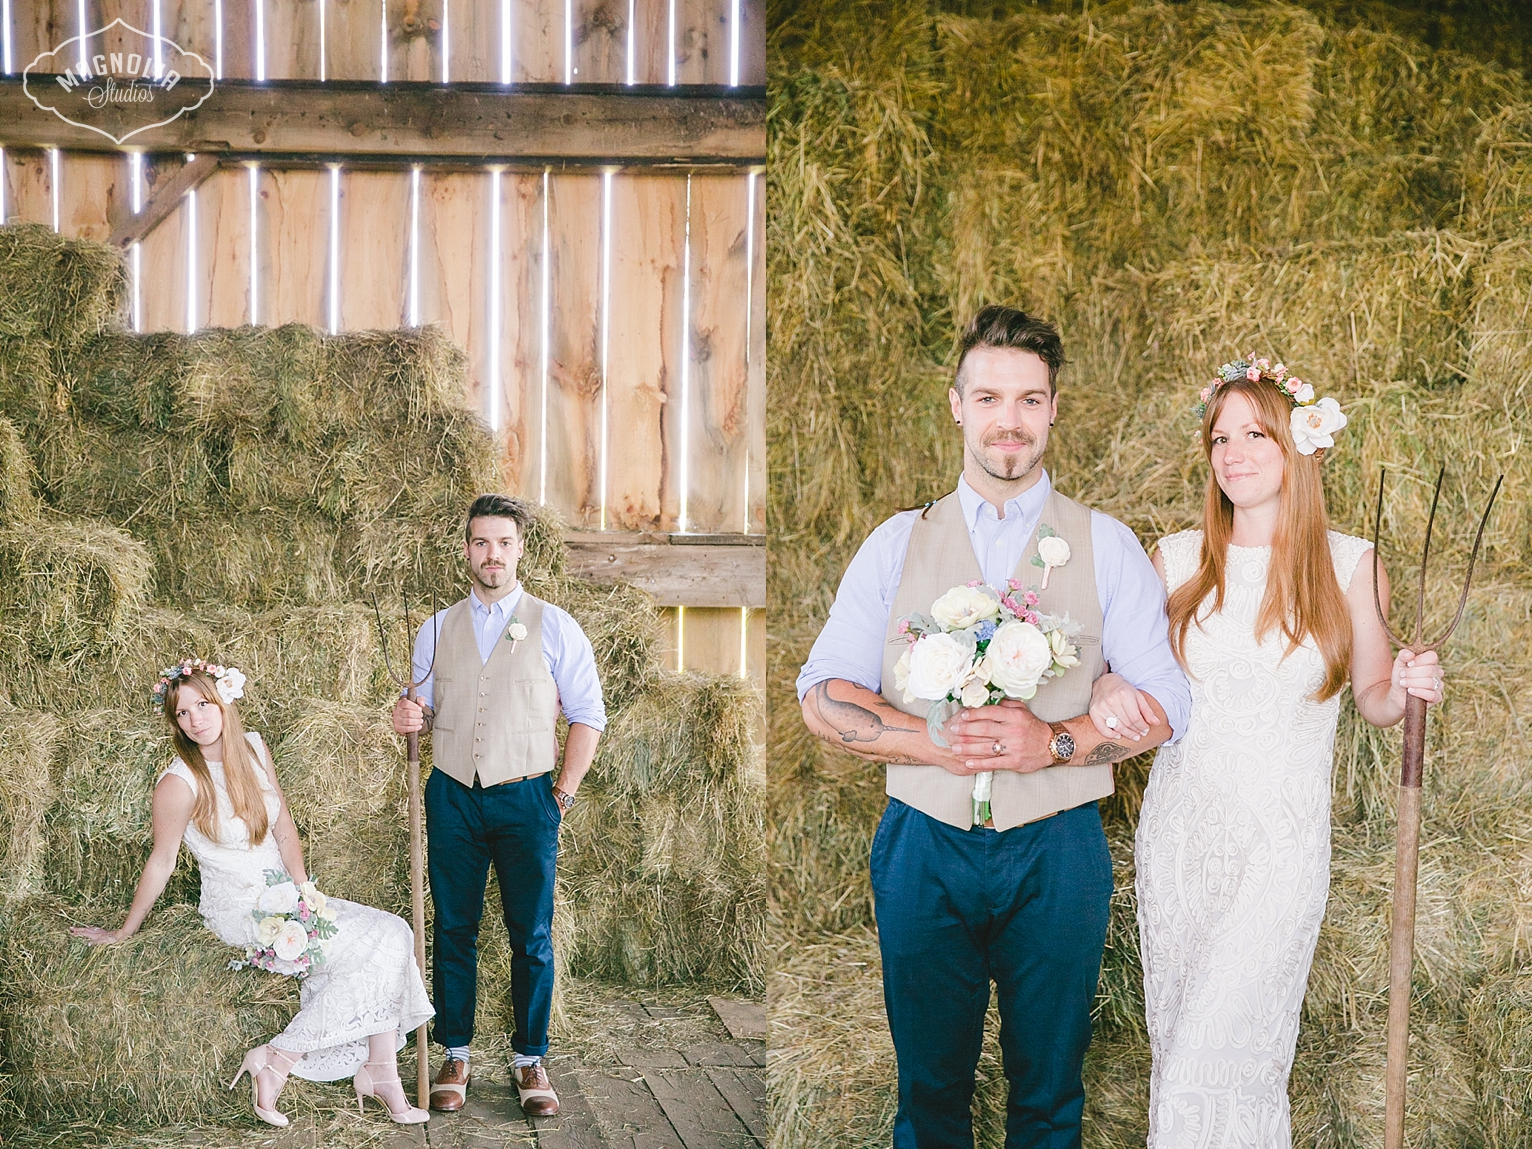 weddings in a barn toronto